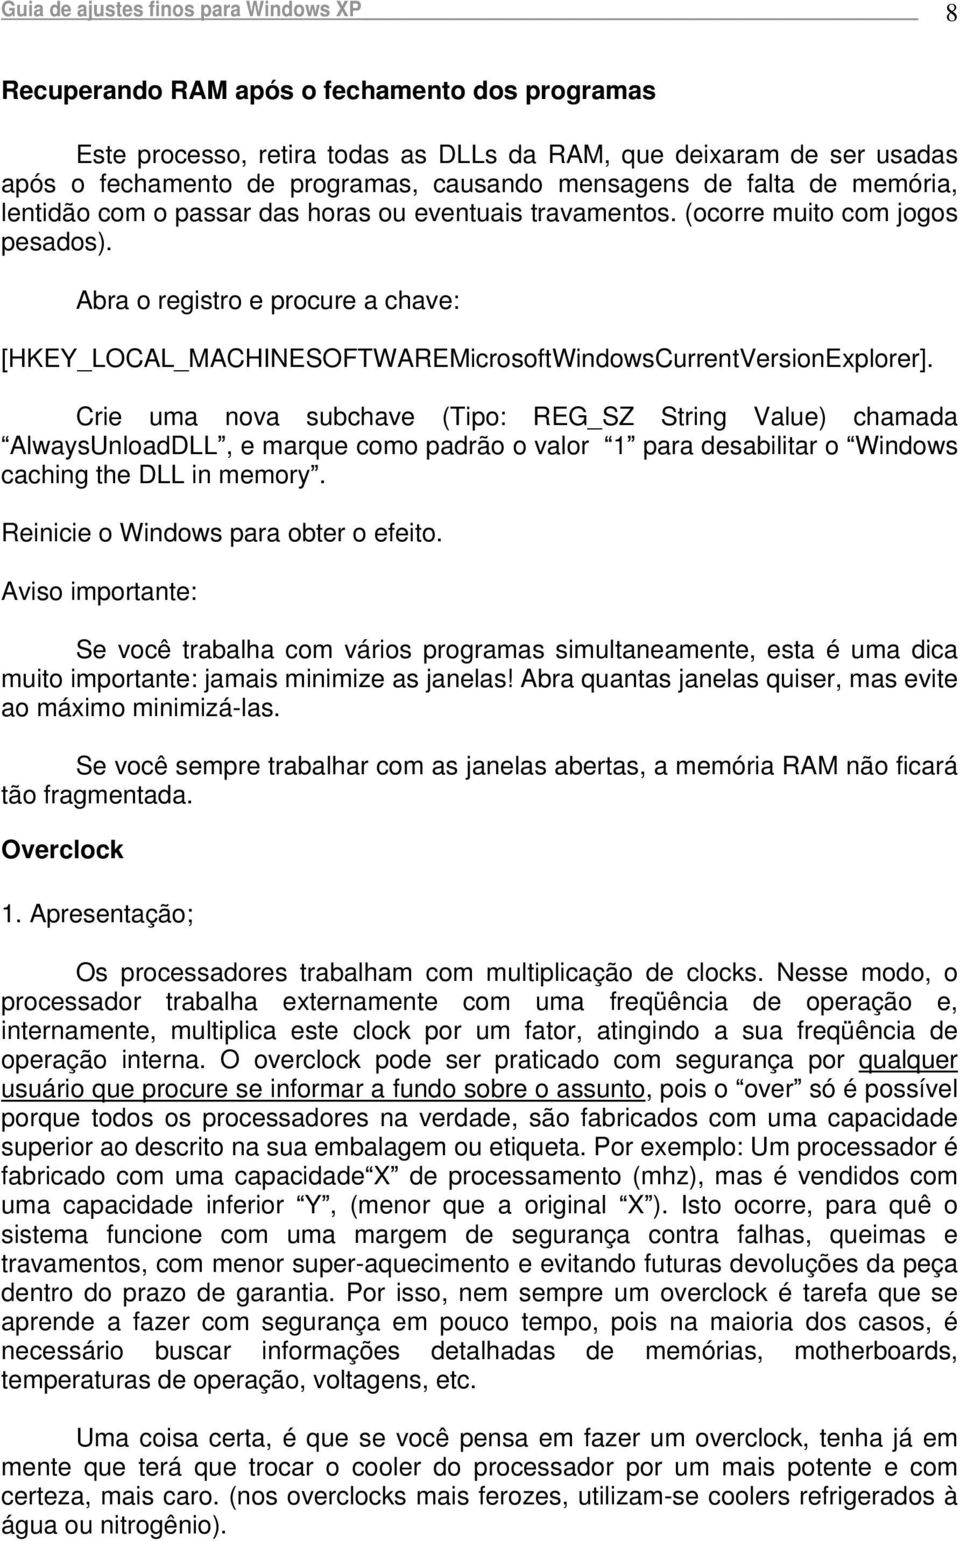 Abra o registro e procure a chave: [HKEY_LOCAL_MACHINESOFTWAREMicrosoftWindowsCurrentVersionExplorer].